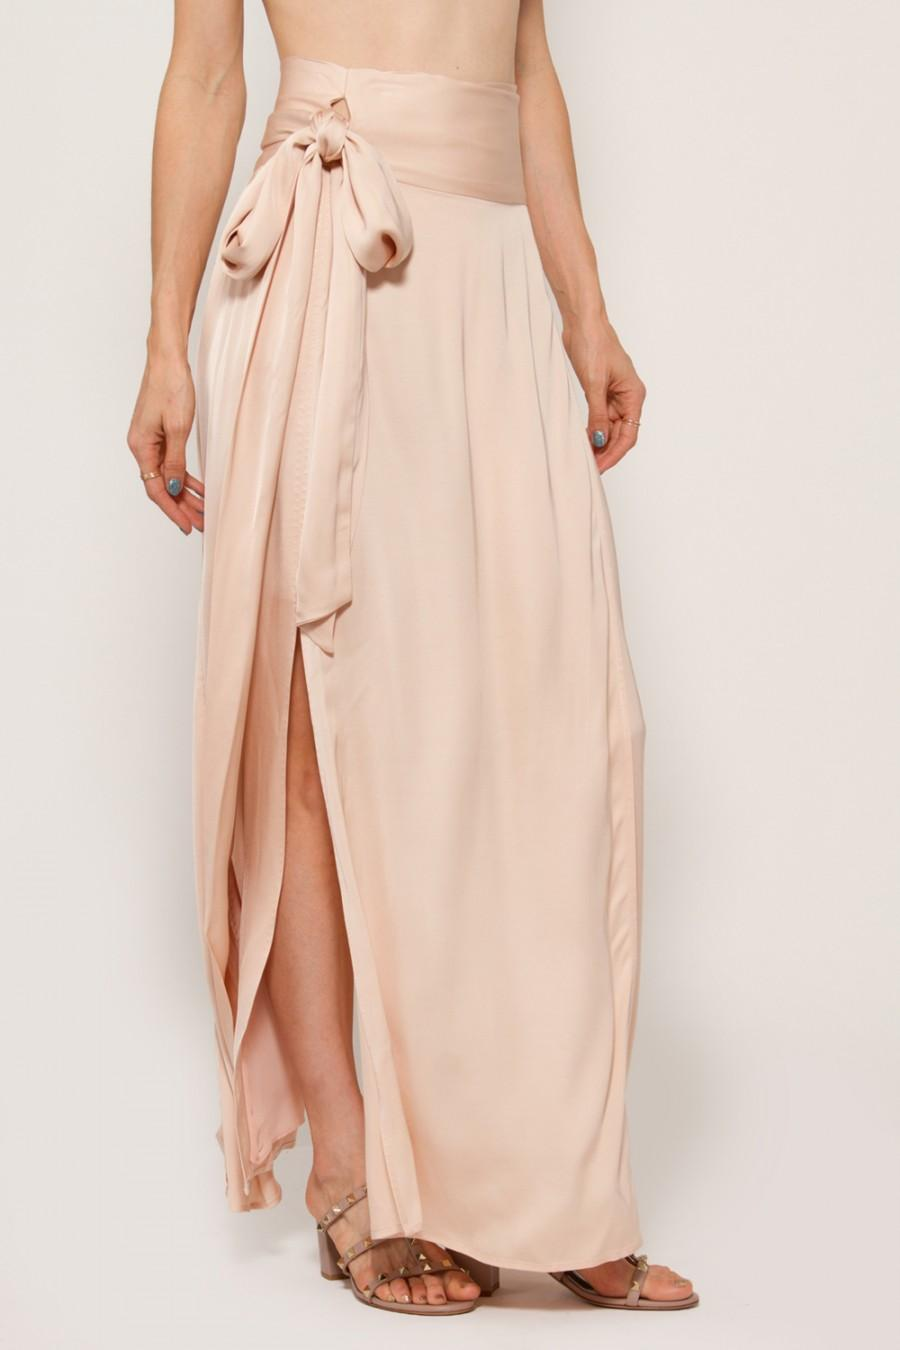 1c3aec6433 ELIZABETH AND JAMES ALMERIA WRAP-TIE MAXI SKIRT W/ SLIT, BLUSH, MEADOW